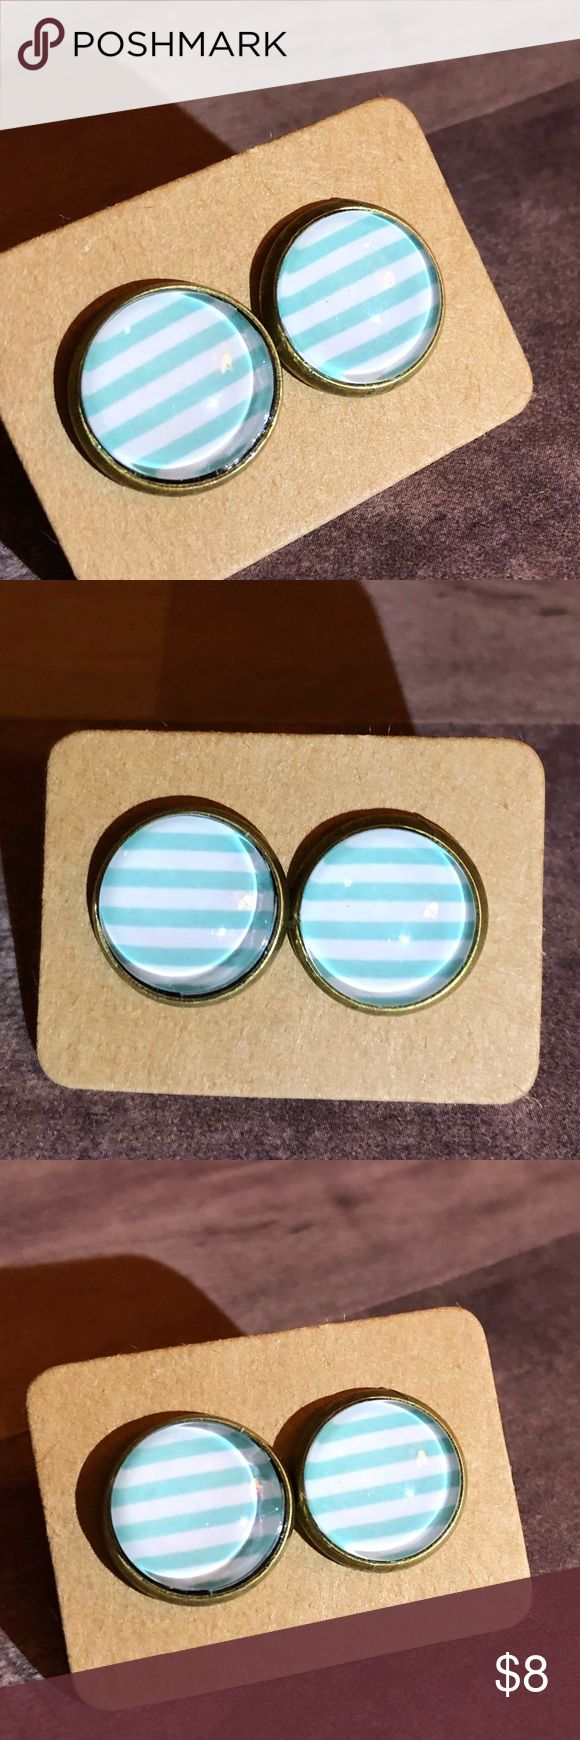 "🆕Blue Sky Stripes Bronze Stud Earrings! New, Handmade by Me! 🆕Modern Geometric Color Line! Approx. 1/2"" Diameter, 12mm; Light Blue Horizontal Stripes on white Back Glass Stud Earrings on a Bronze Post Back; 📸These are my pics of the actual item you will receive!  ▶️Part of 3 for $15 Deal! Bundle & Save! • Glass Cabochon Stud Earrings for pierced ears • Nickel, Lead & Cadmium Free  *NO TRADES *Price is FIRM as Listed!  *Sales are Final-Please Read Descriptions! gallery_of_gems Jewelry…"